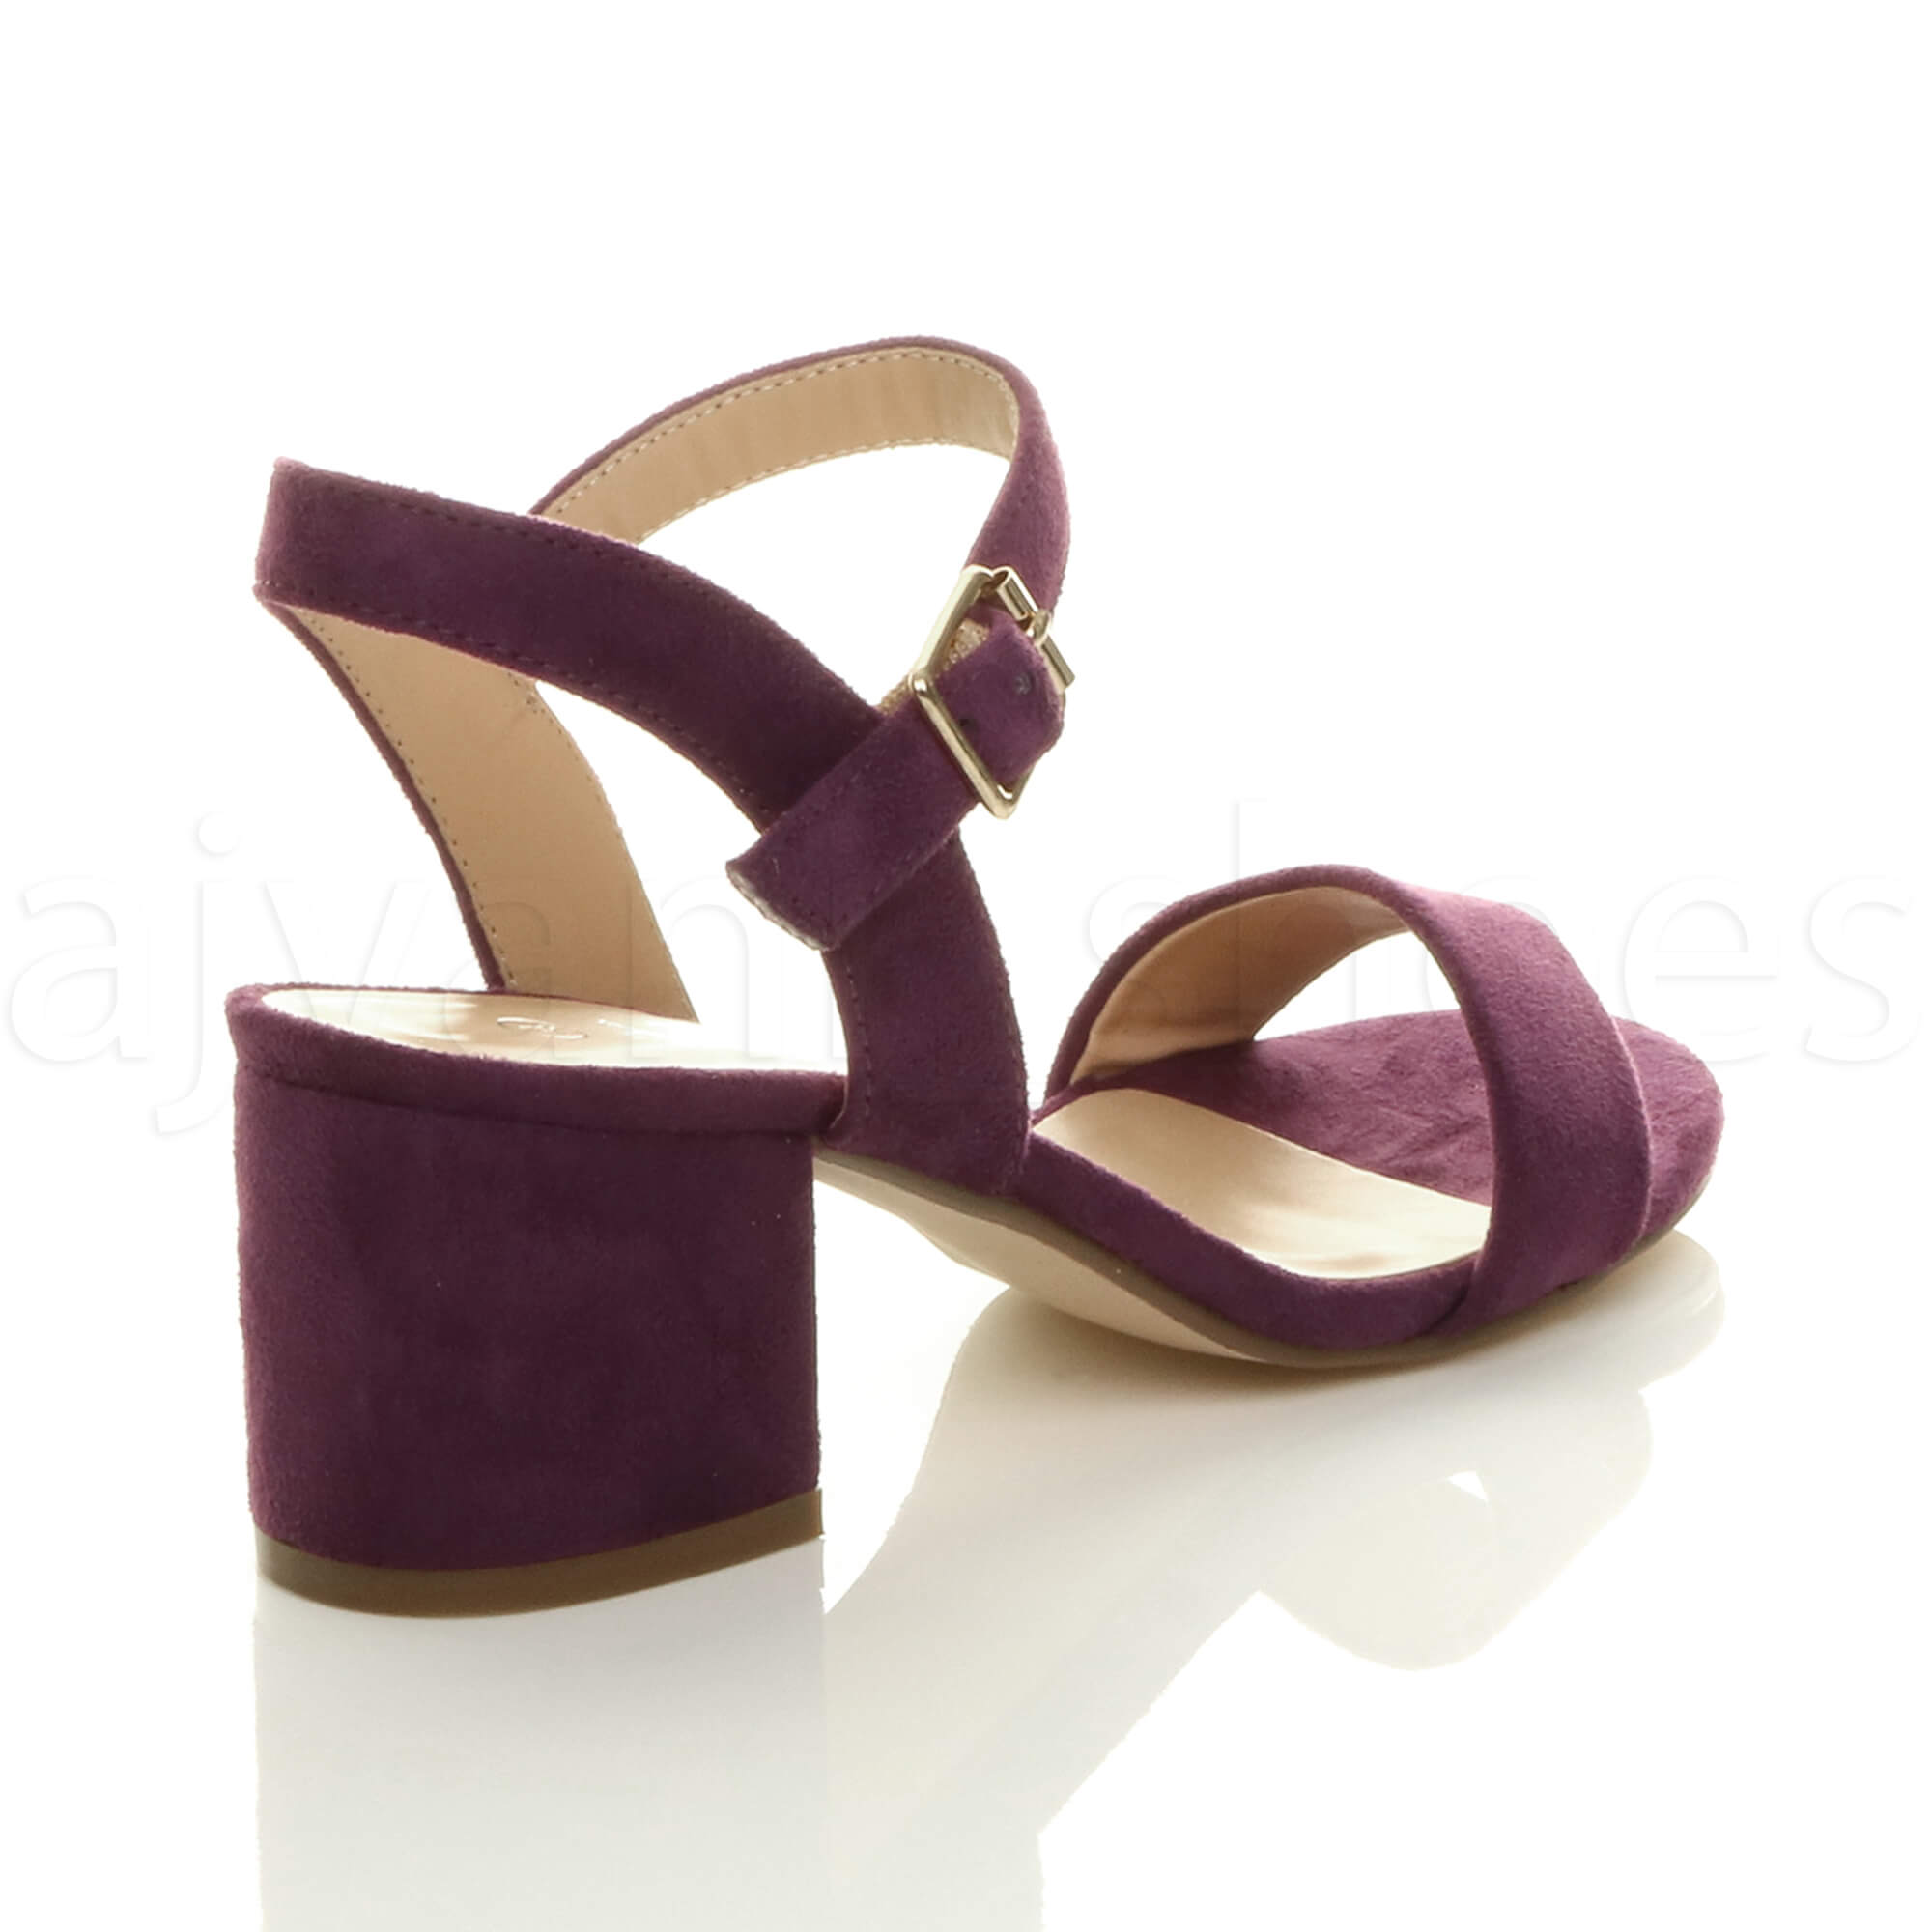 WOMENS-LADIES-MID-LOW-BLOCK-HEEL-PEEP-TOE-ANKLE-STRAP-STRAPPY-PARTY-SANDALS-SIZE thumbnail 101